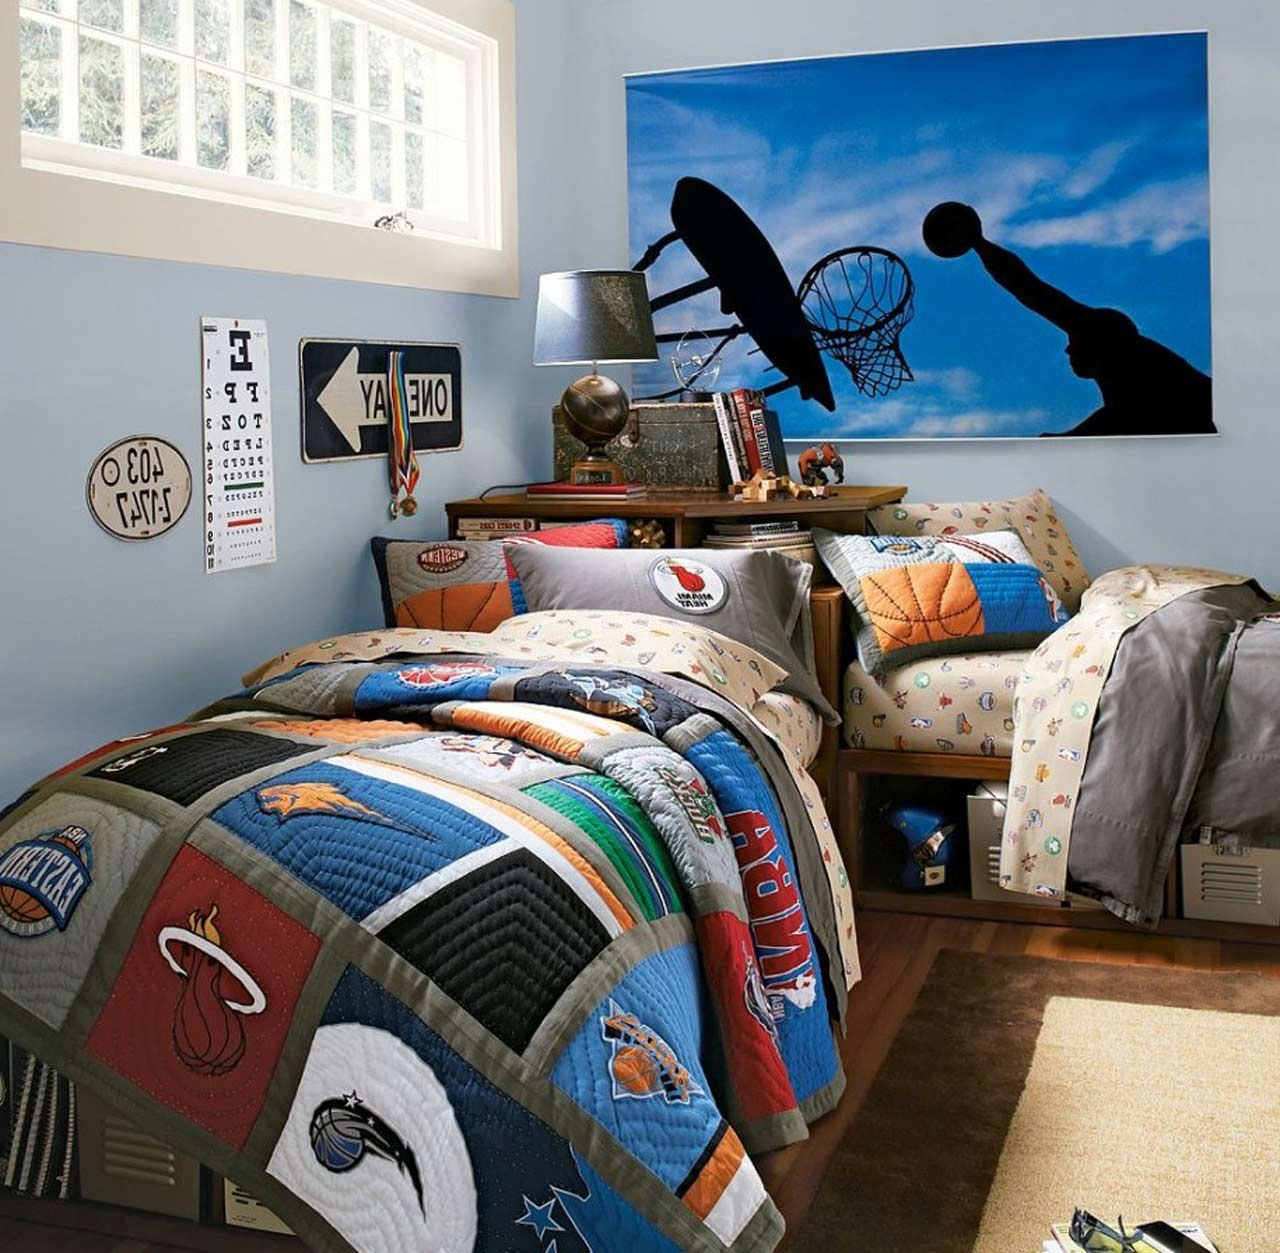 Basket Ball Boys Rooms Color Ideas ~ http://www.lookmyhomes.com/taking-a-look-at-the-boys-rooms-color-ideas/